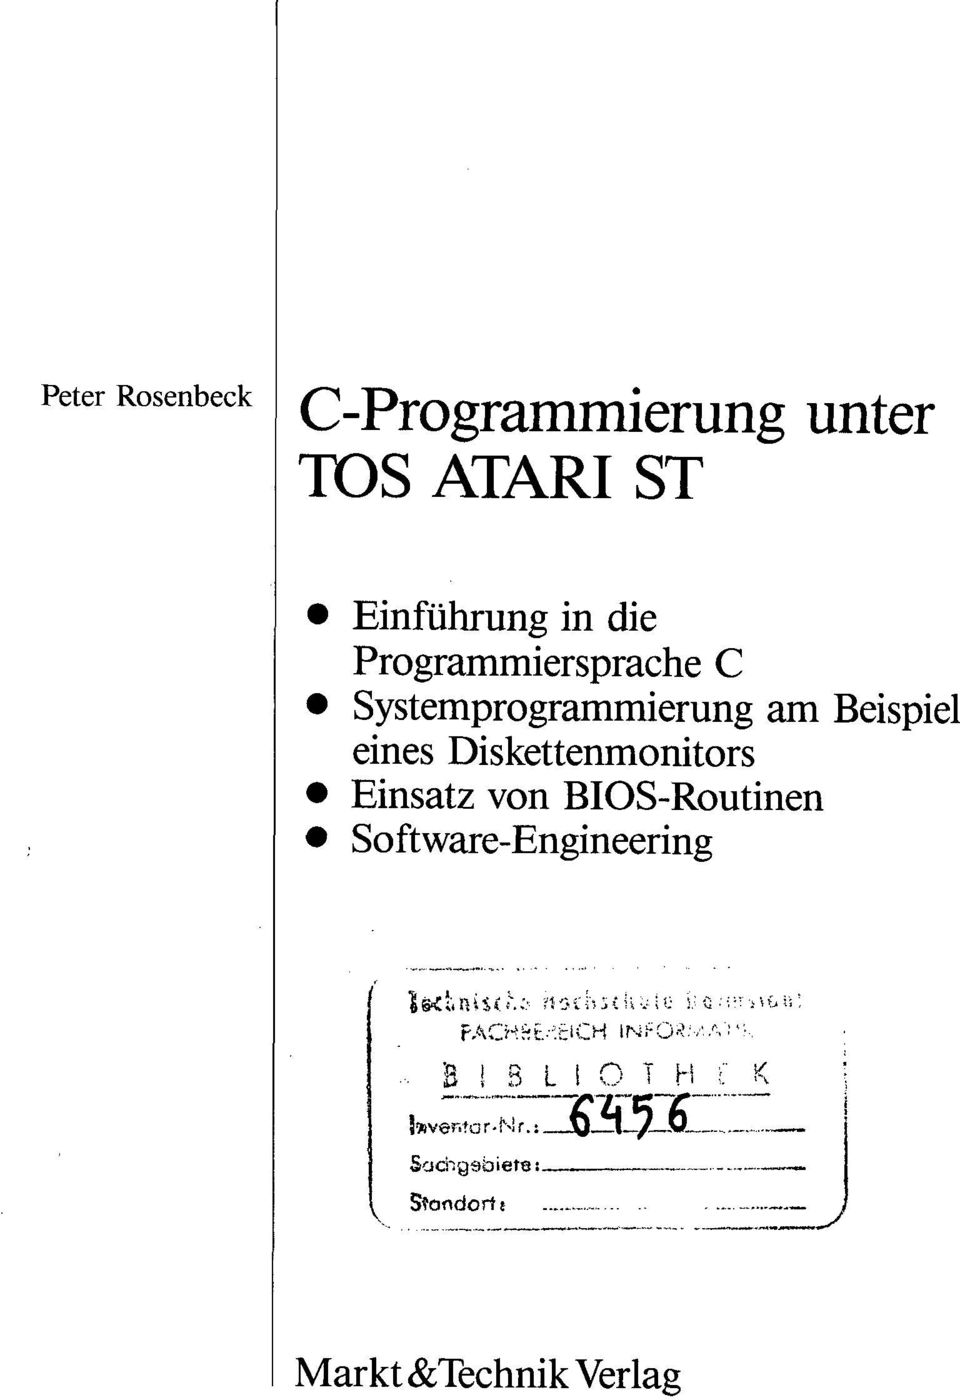 Diskettenmonitors Einsatz von BIOS-Routinen Software-Engineering - B I B L